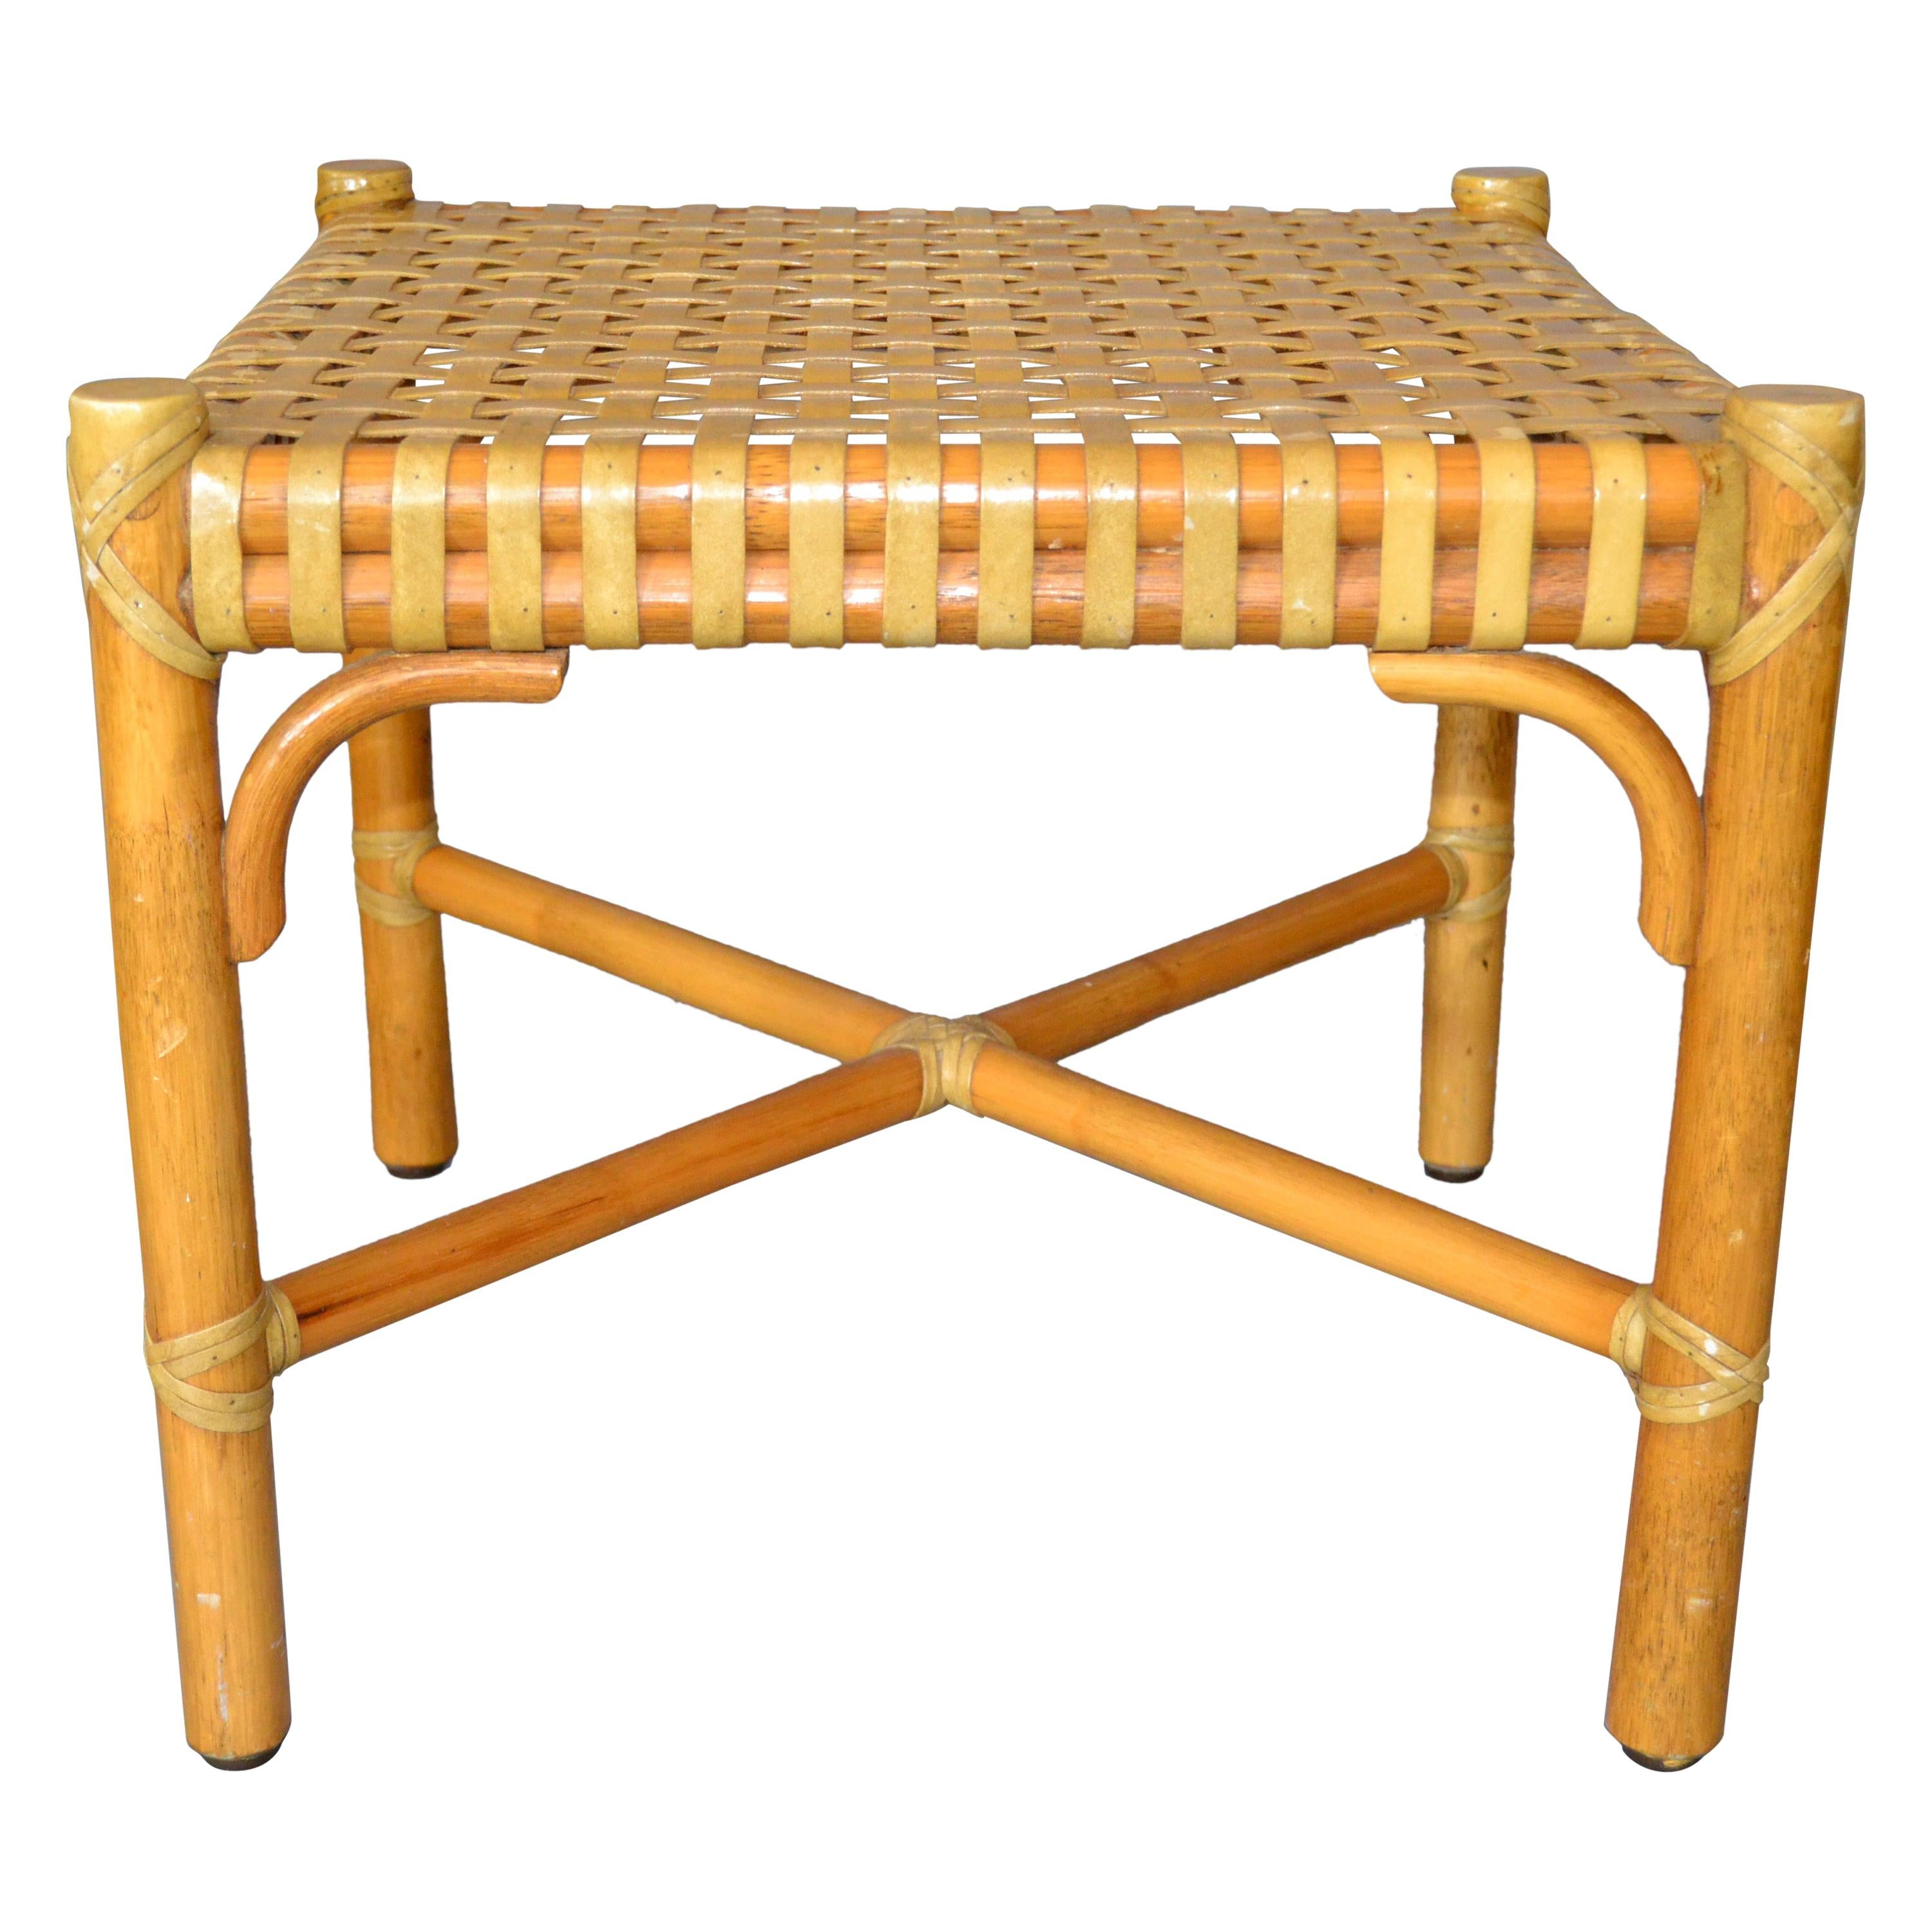 McGuire Mid-Century Modern Bamboo and Handwoven Leather Top Side Table, Stool